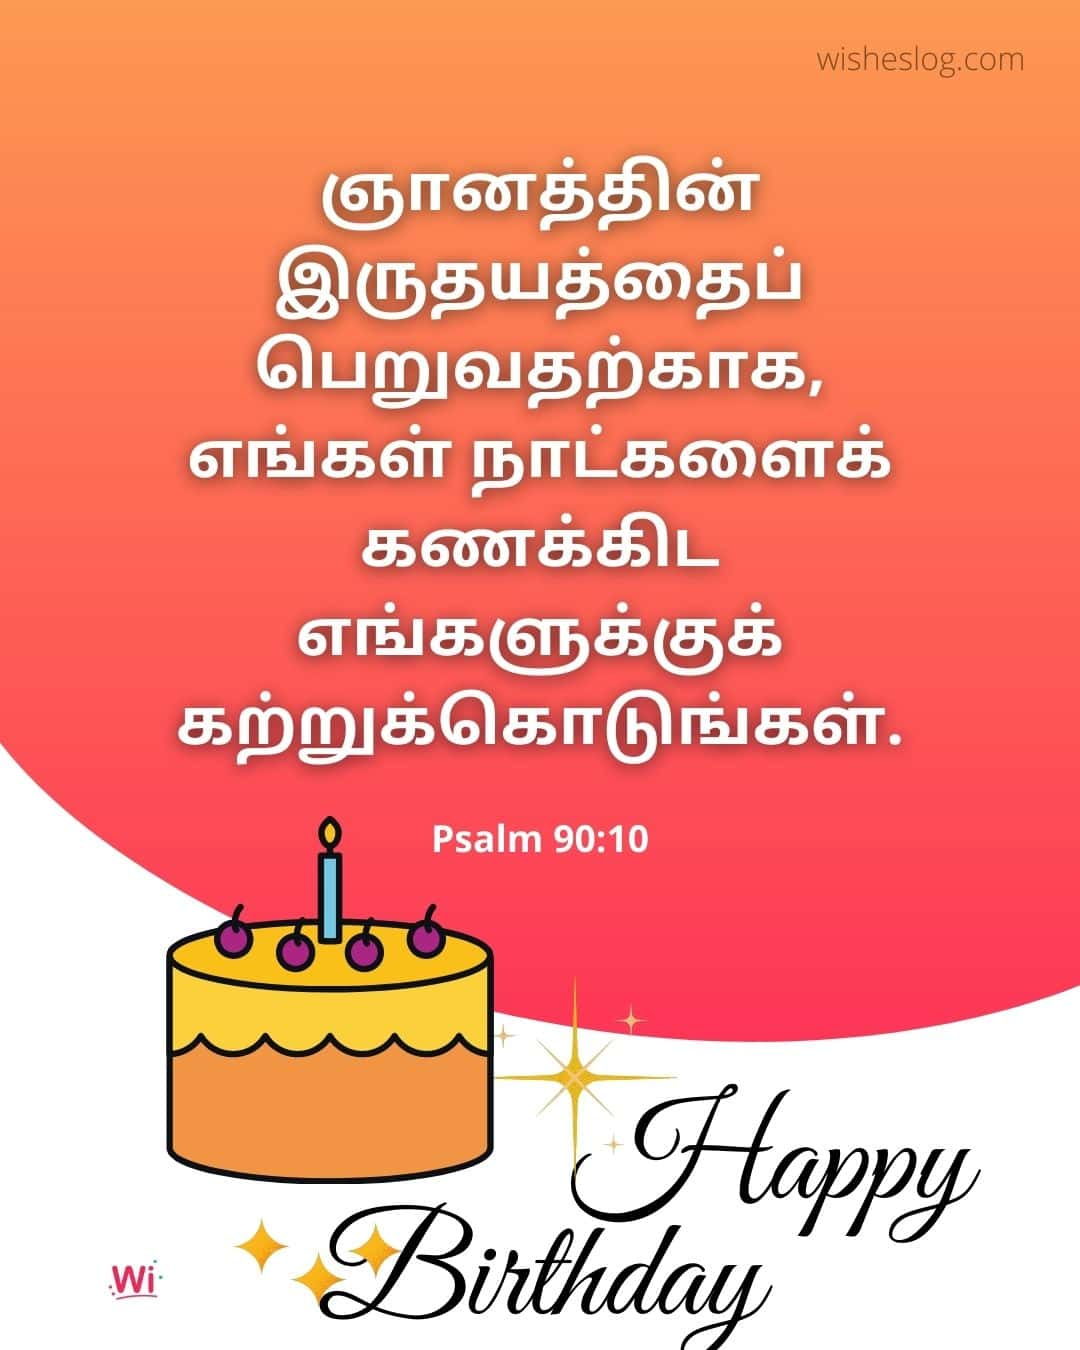 bible verses for birthdays blessing in tamil